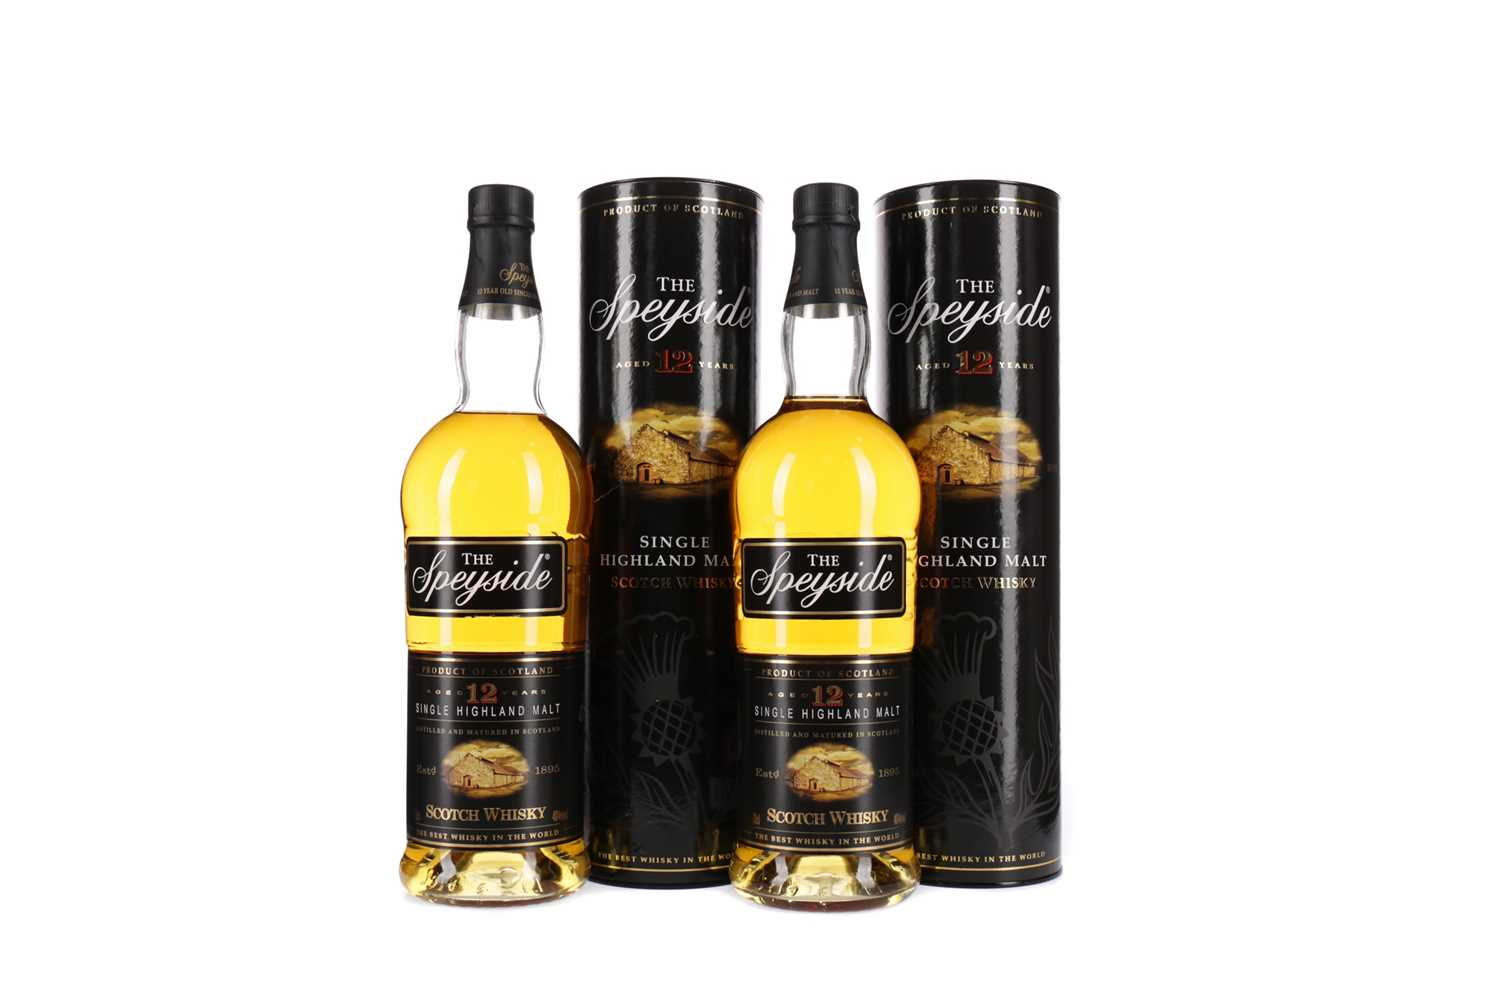 Lot 27 - TWO BOTTLES OF SPEYSIDE AGED 12 YEARS